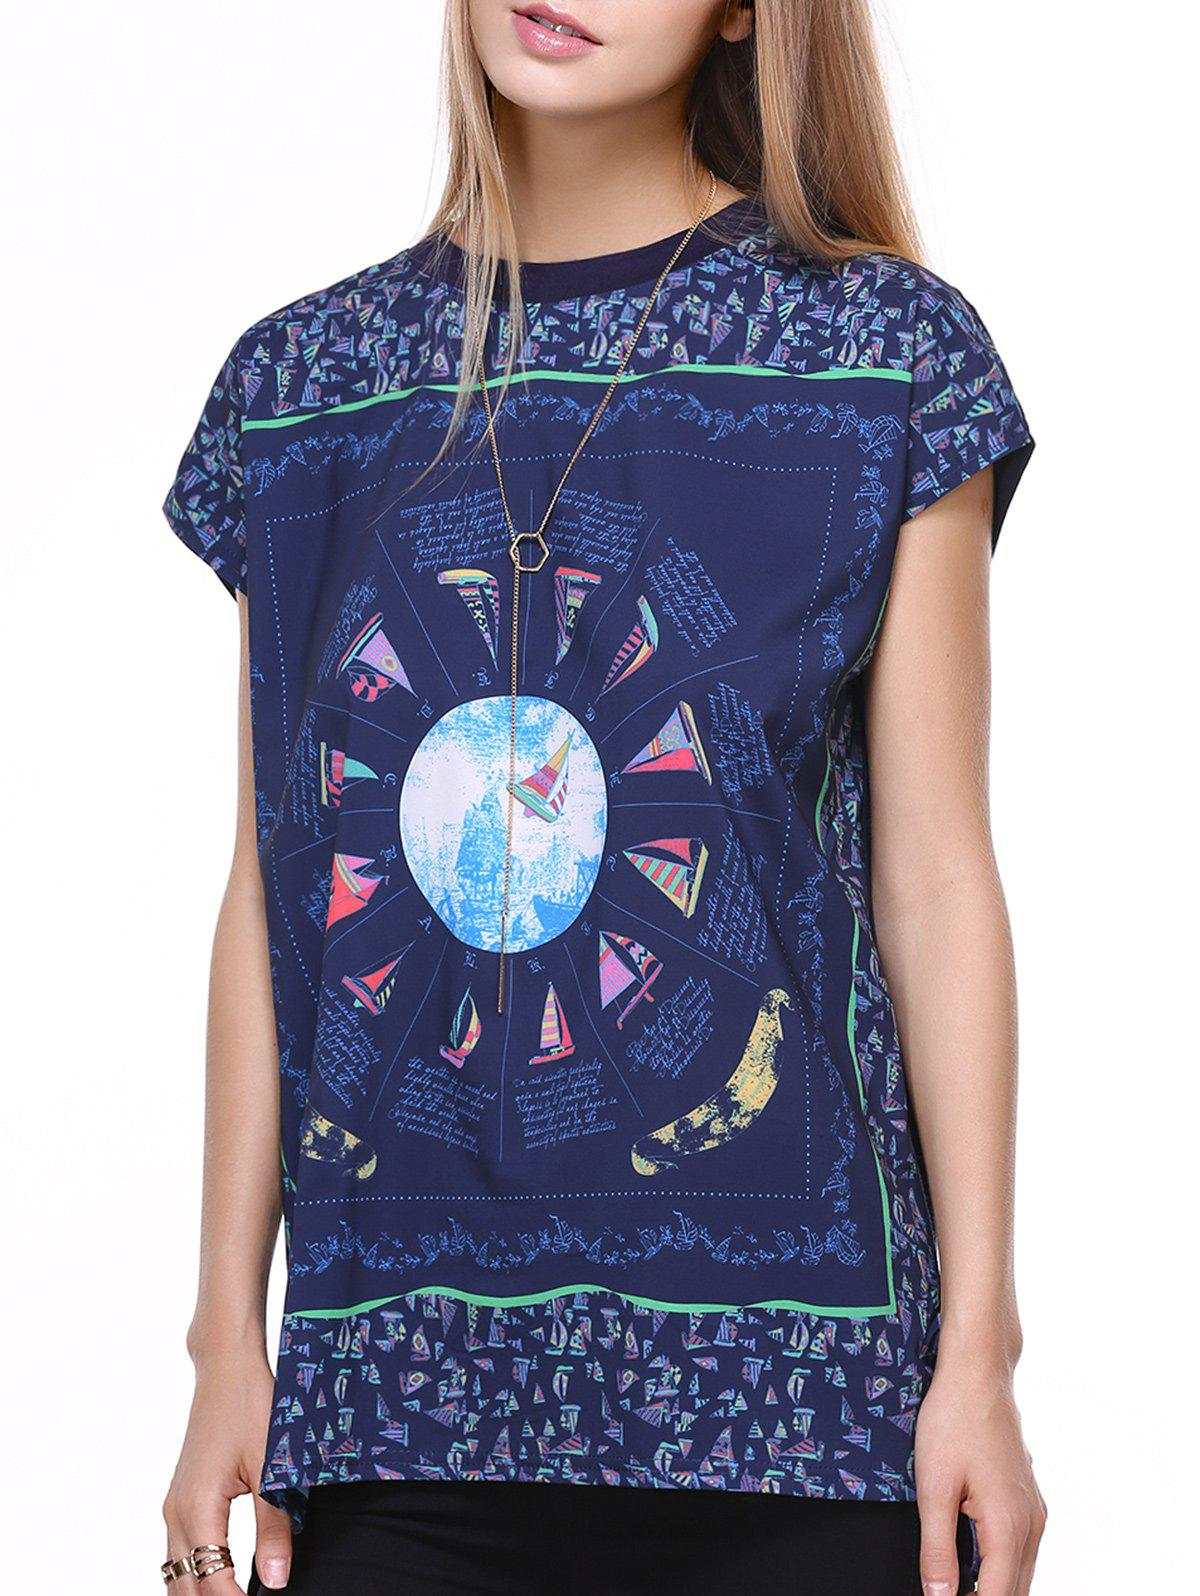 Casual Short Sleeve Round Neck Printed T-Shirt For Women - DEEP BLUE 2XL